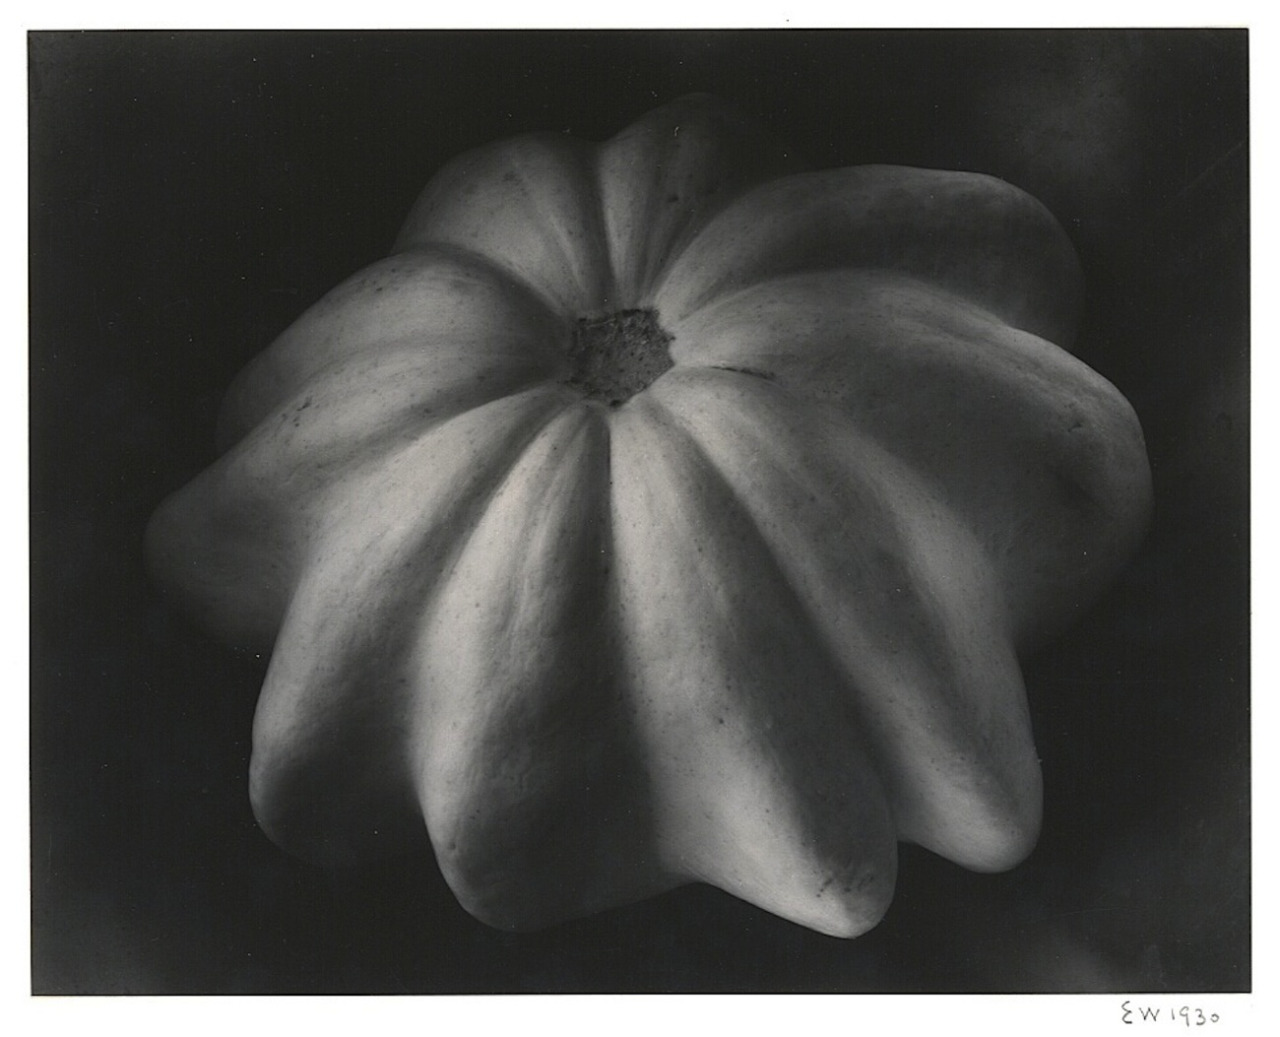 Edward Weston, Winter squash, 1930, artnet.com